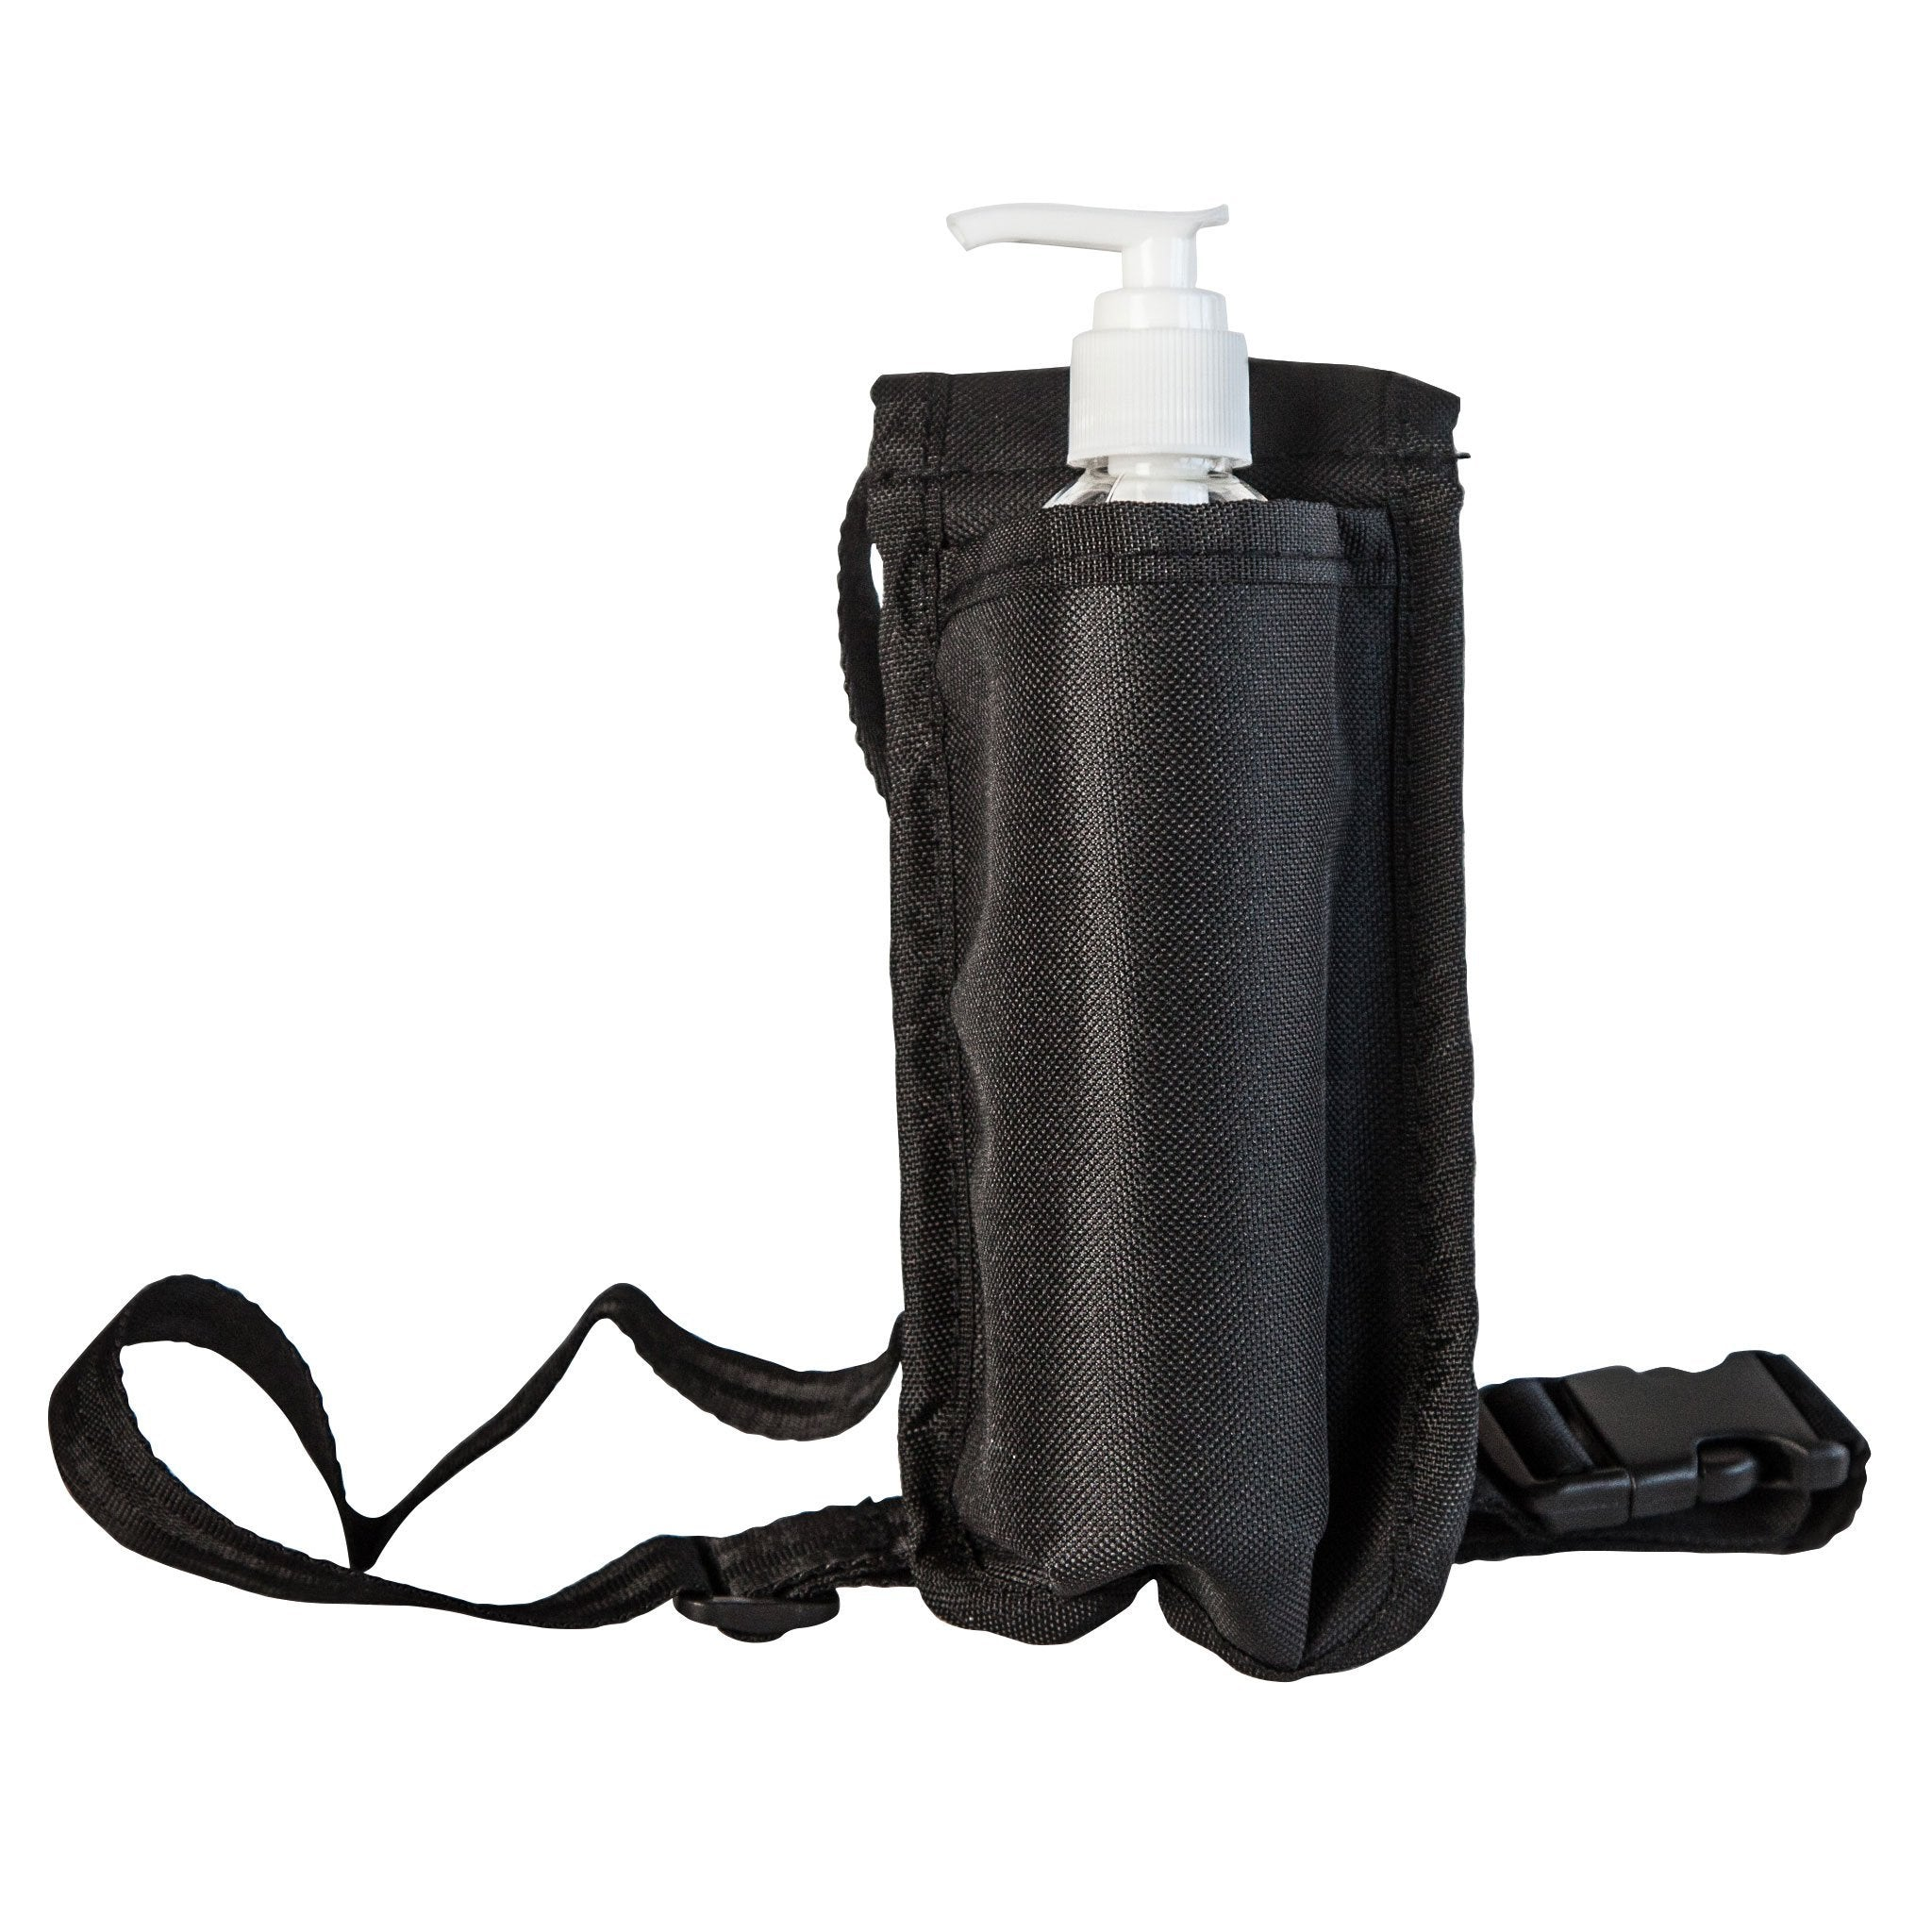 Oil Holster – Black - With Bottle